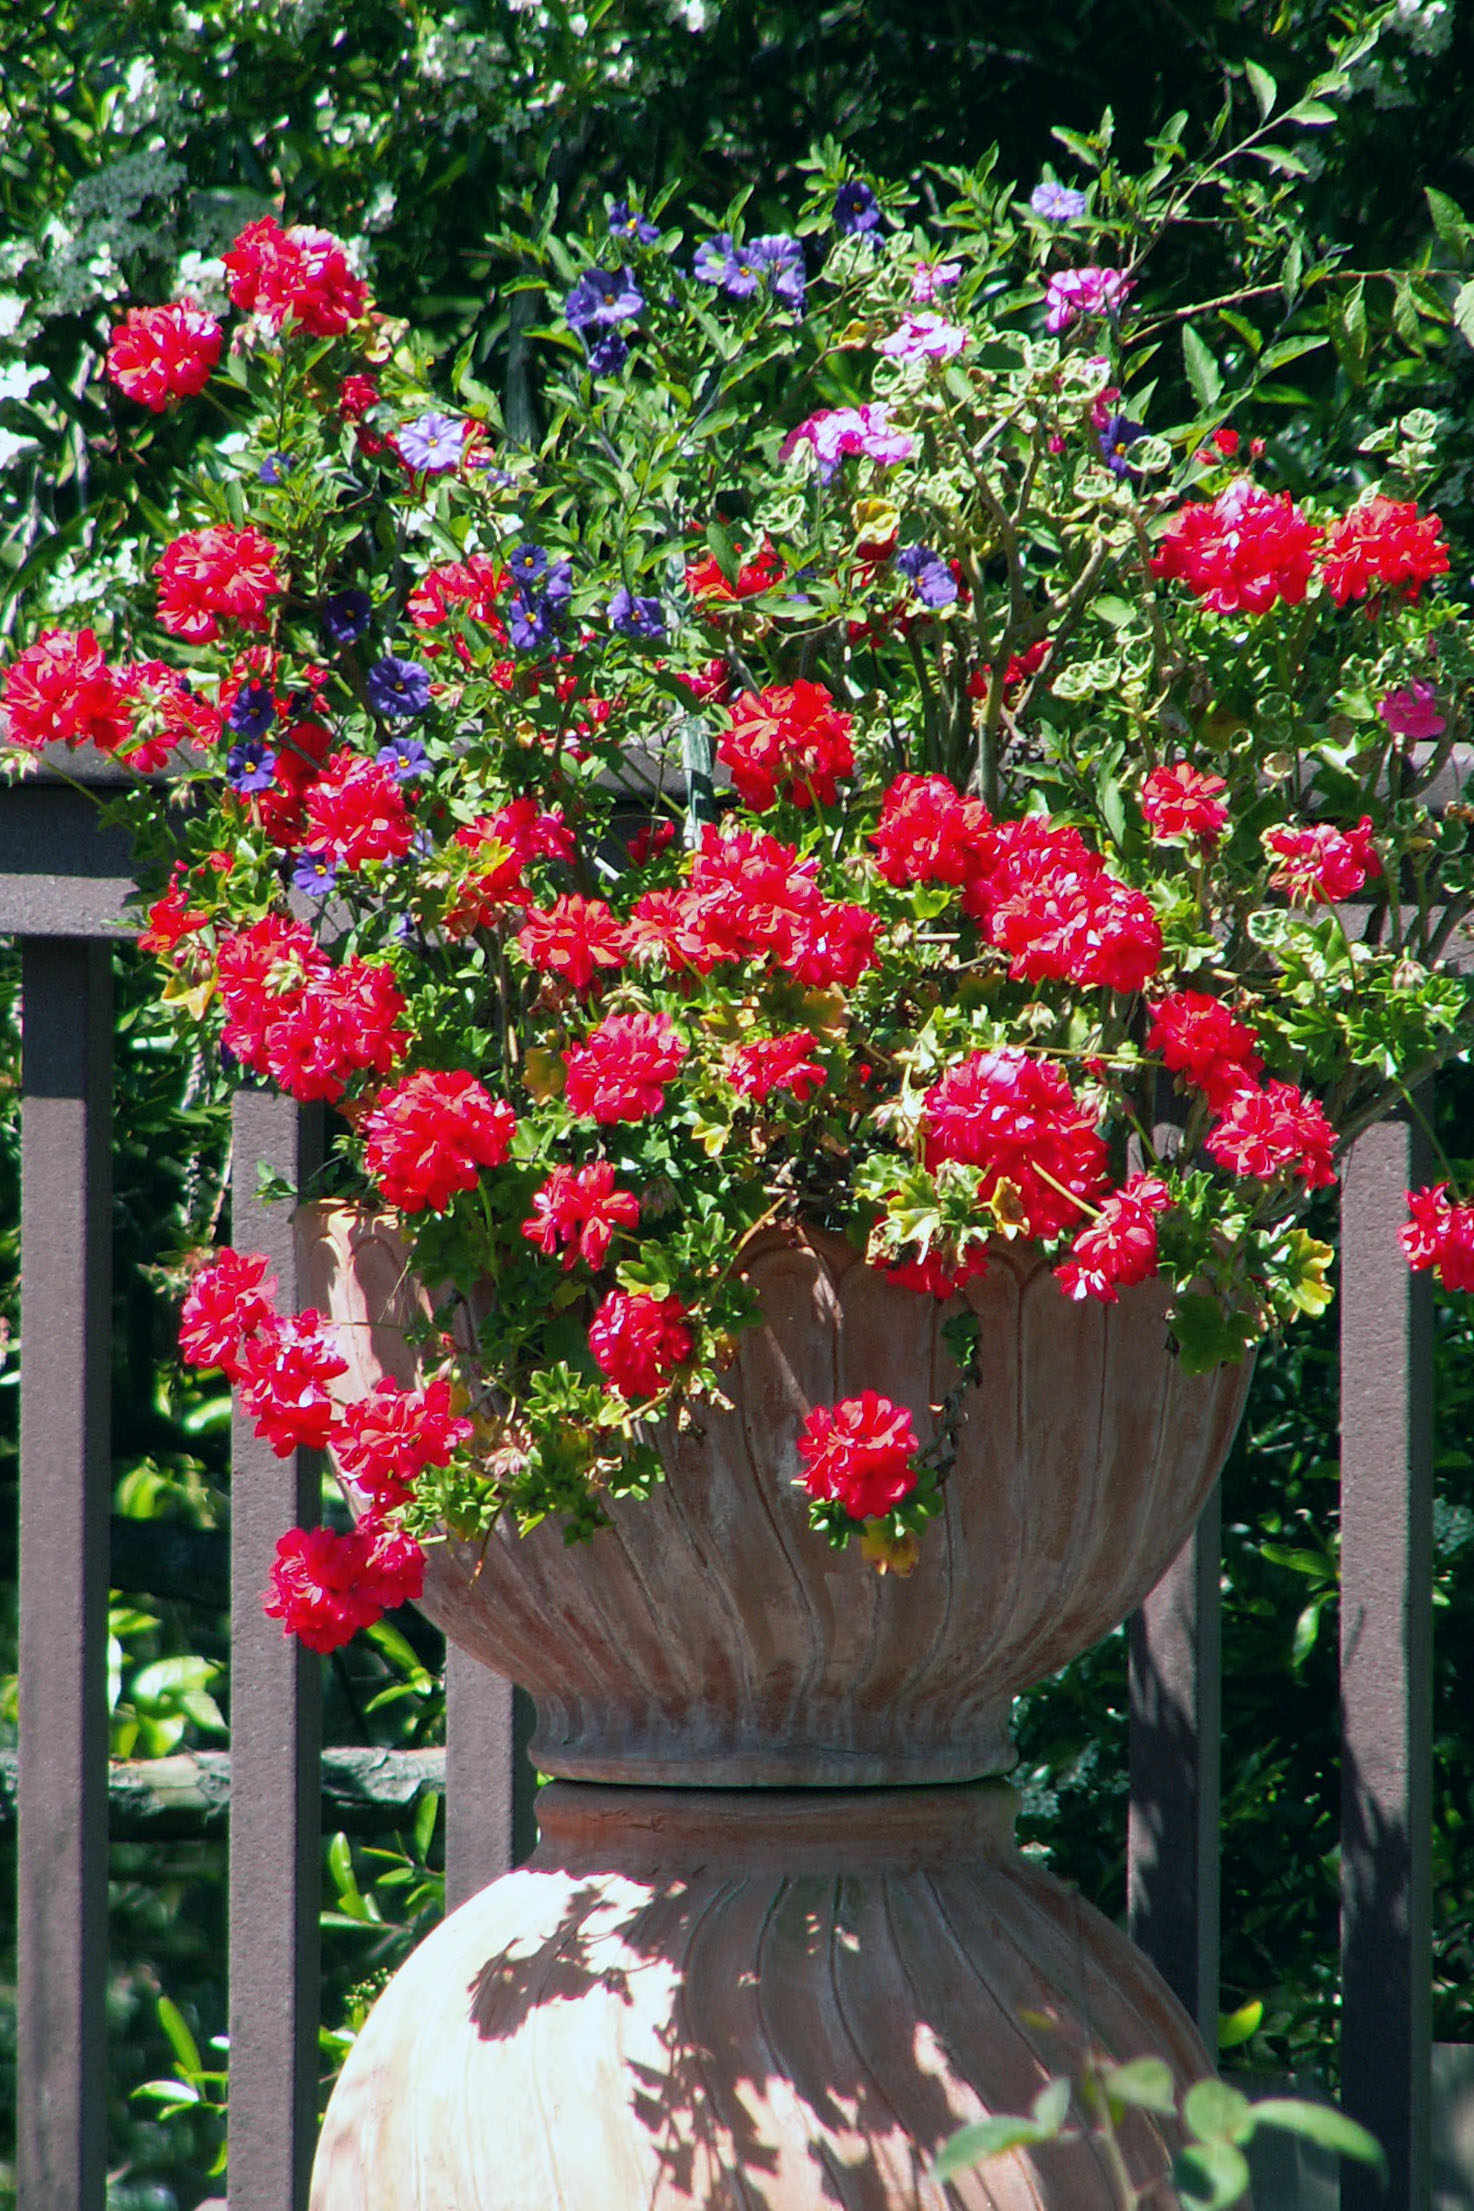 red flowering plant in pot